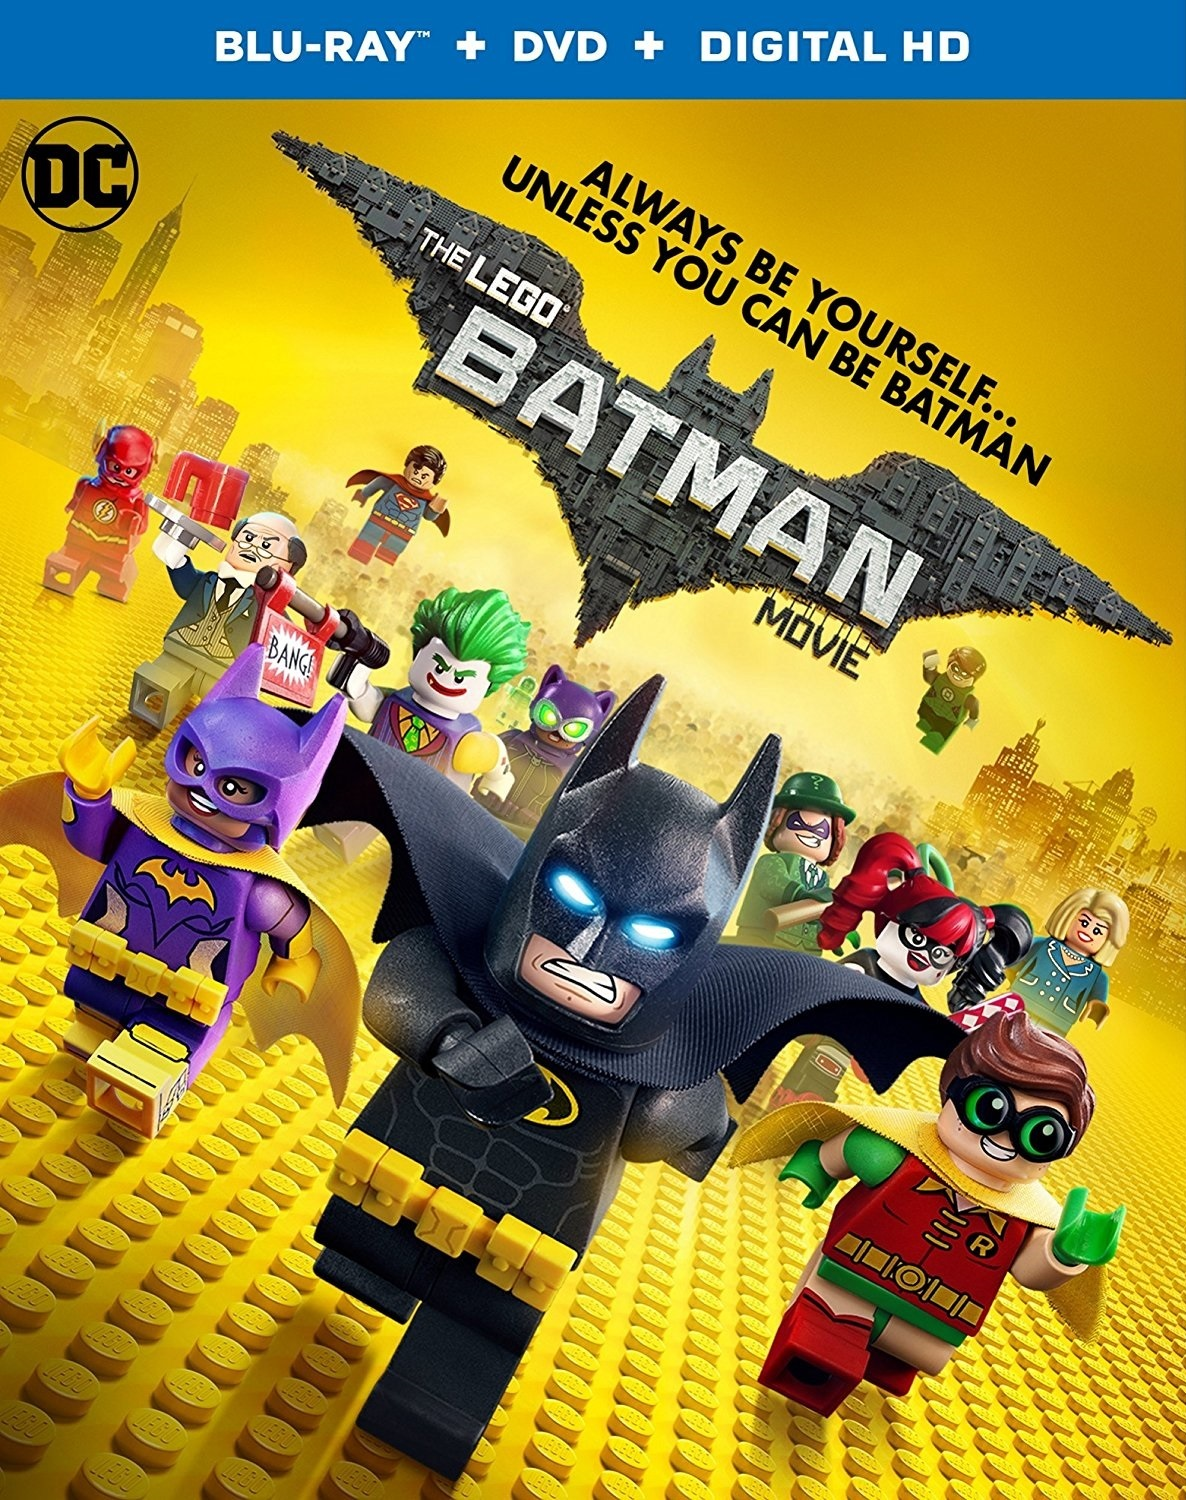 The LEGO Batman Movie (2017) poster image